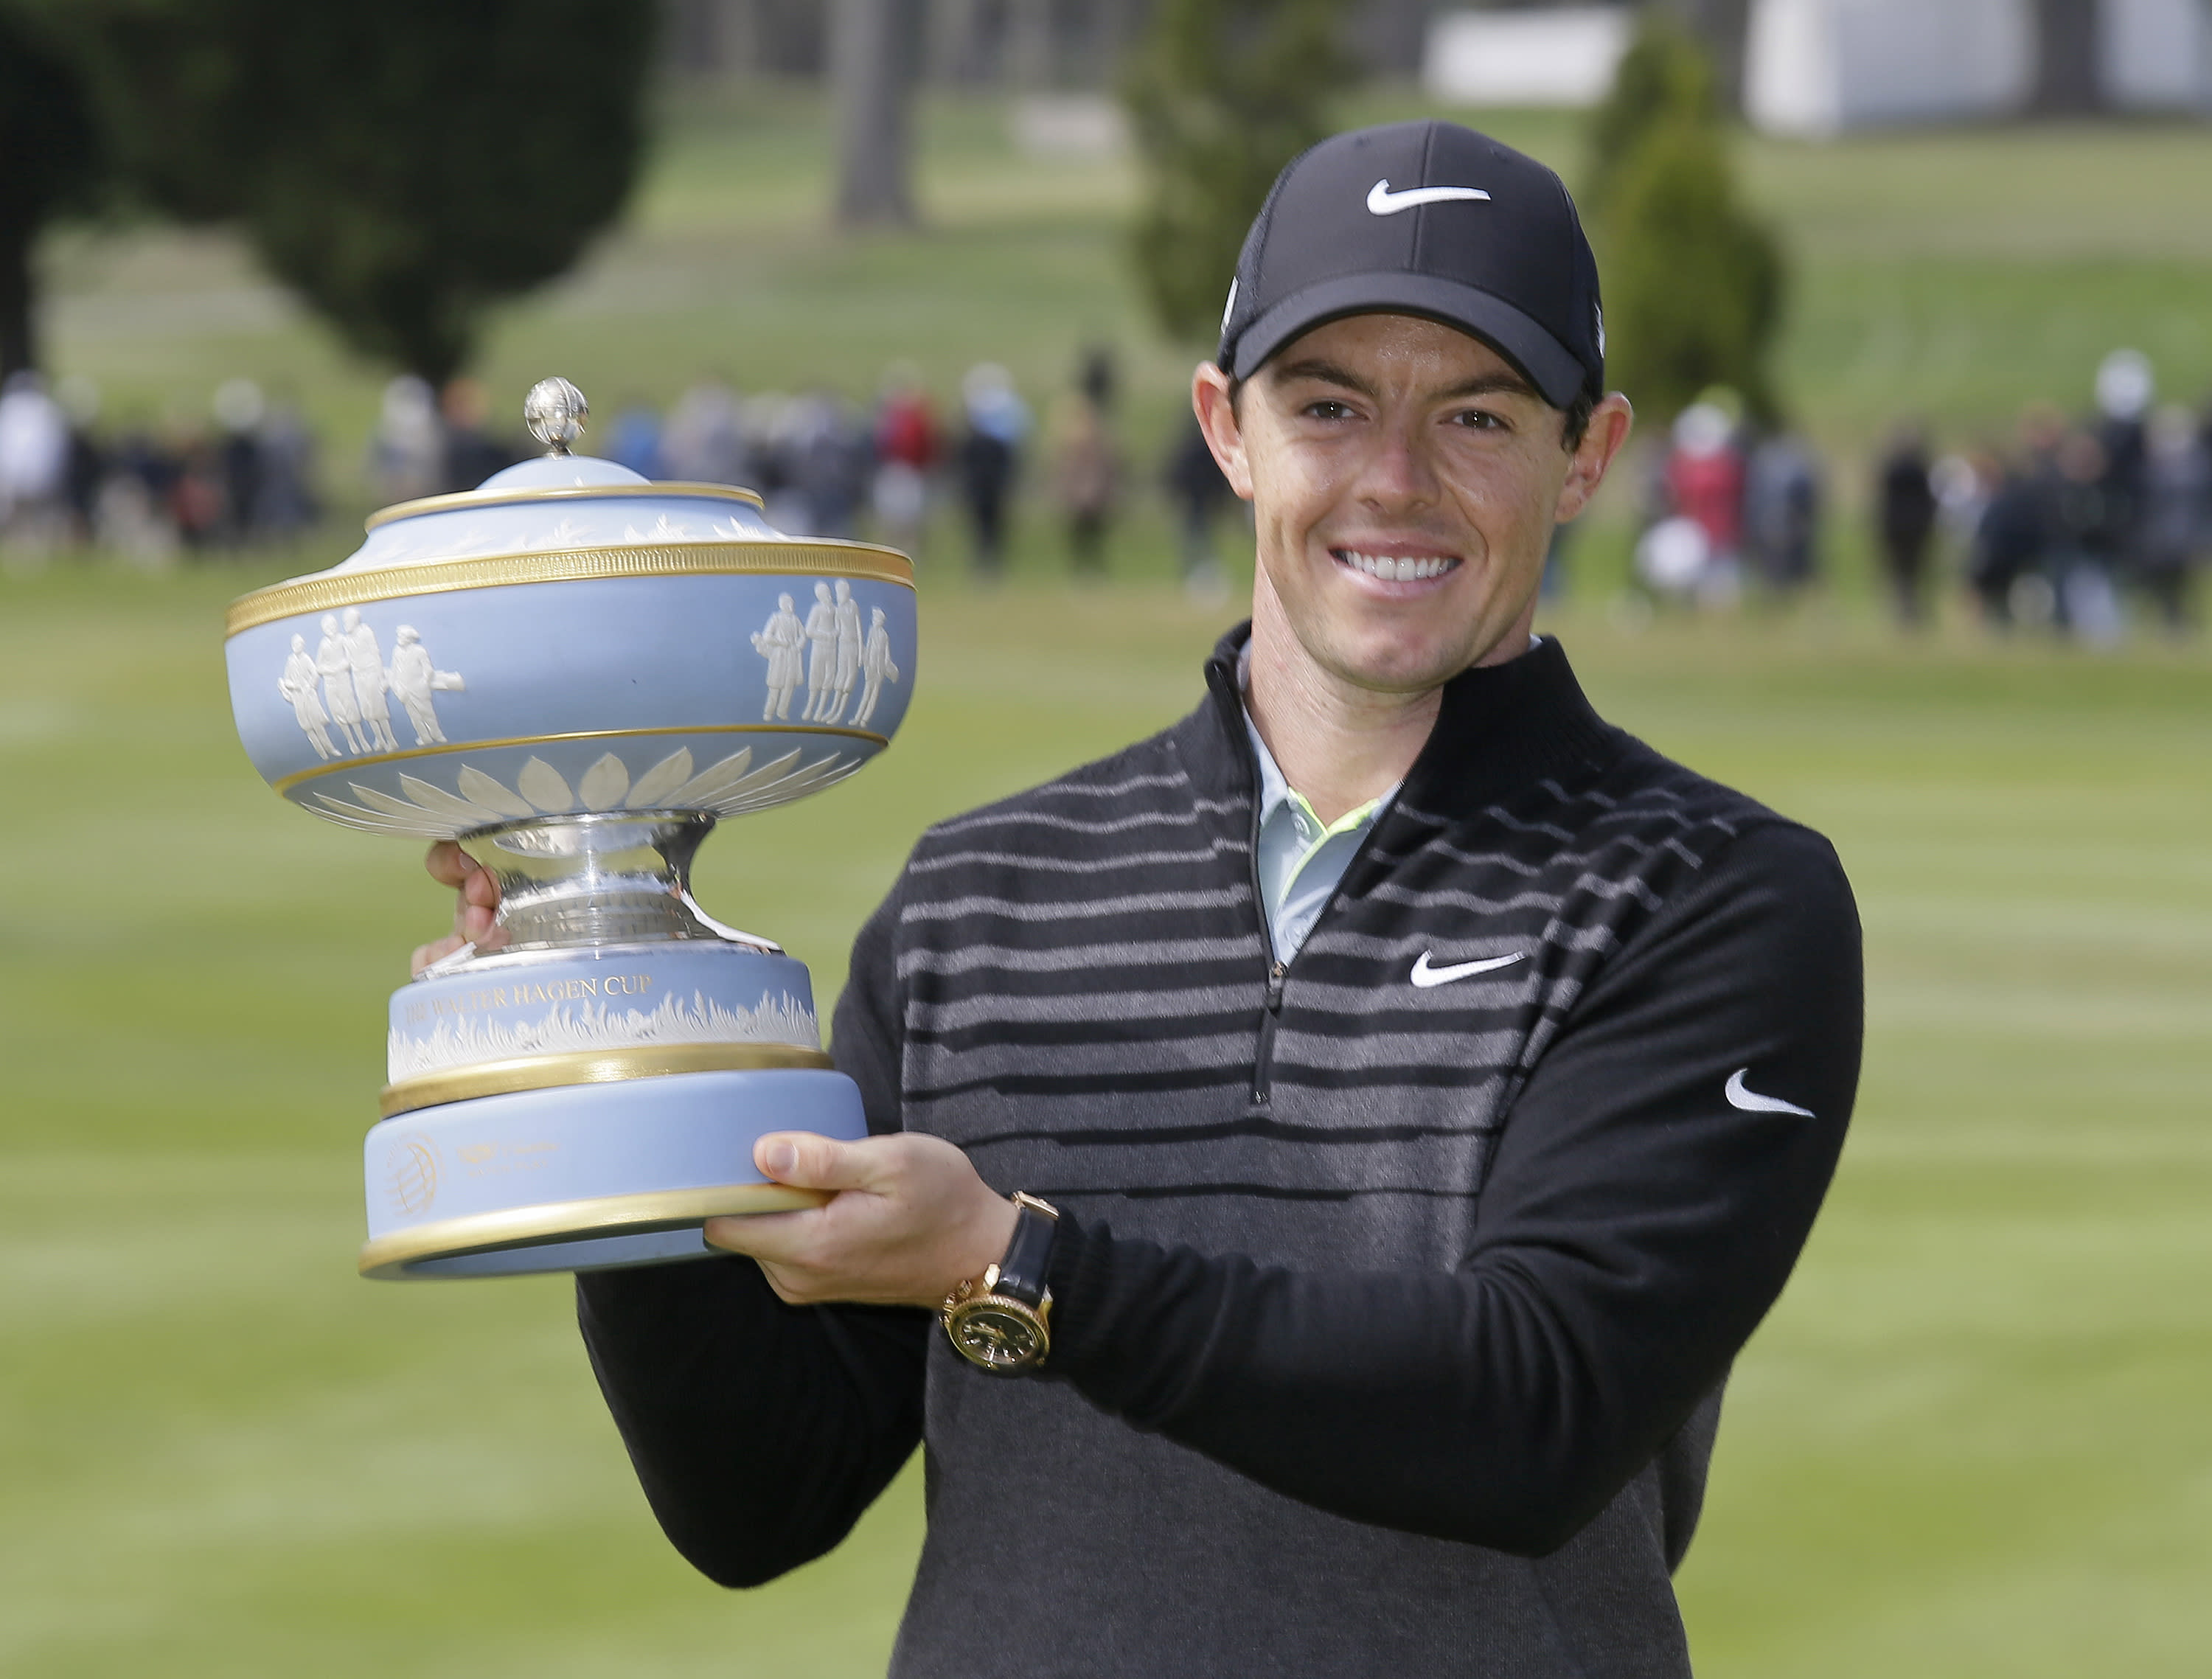 Rory McIlroy: Holding the top ranking, wearing the crown